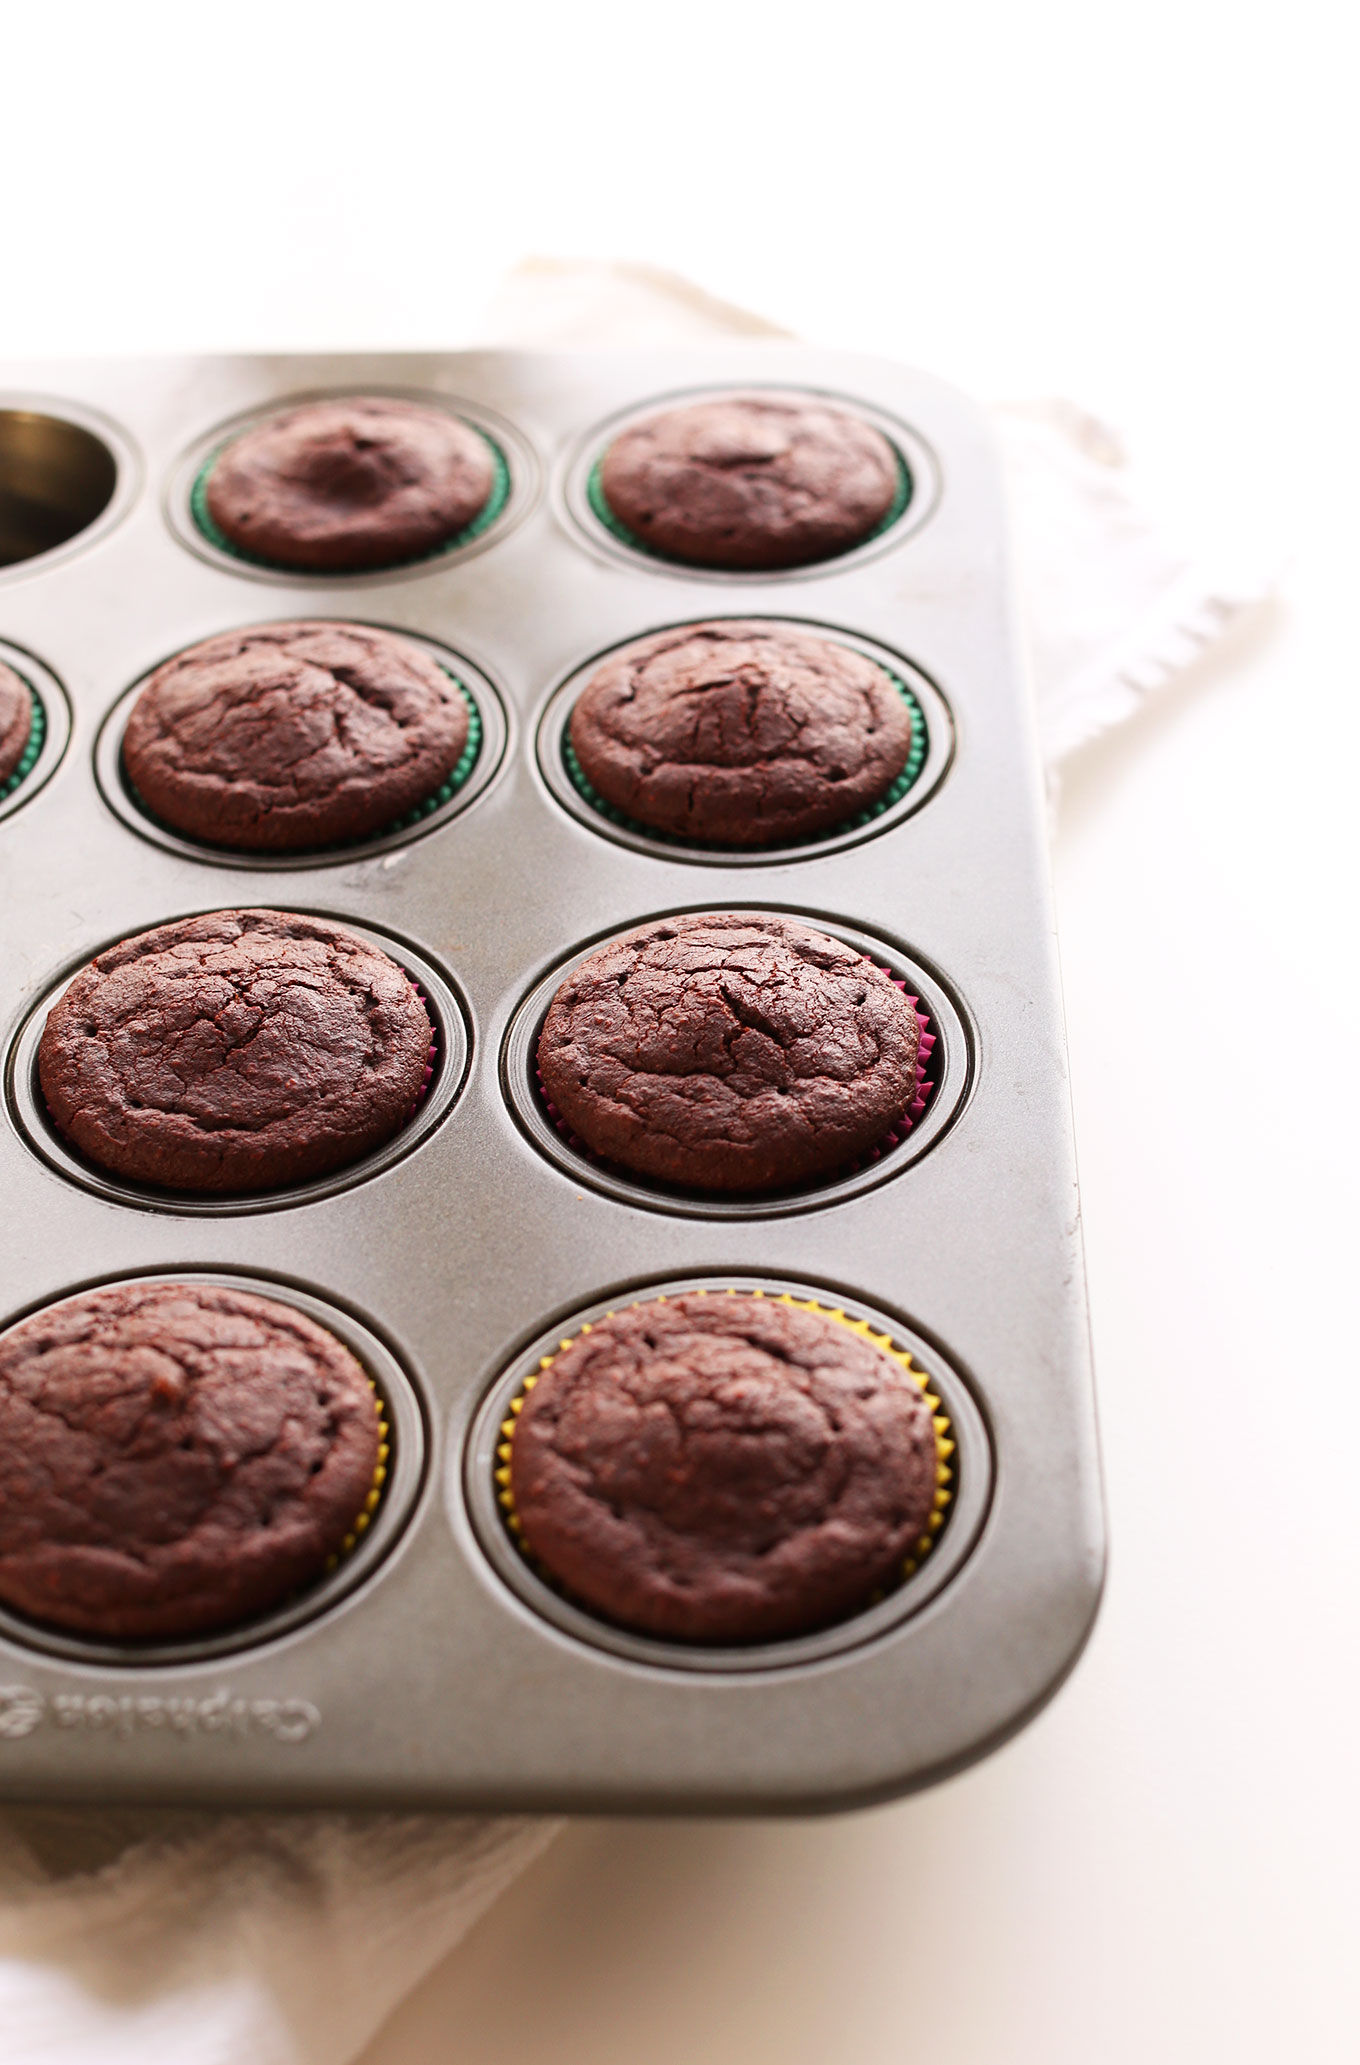 Muffin Tin Filled With Vegan Gluten Free Chocolate Cupcakes